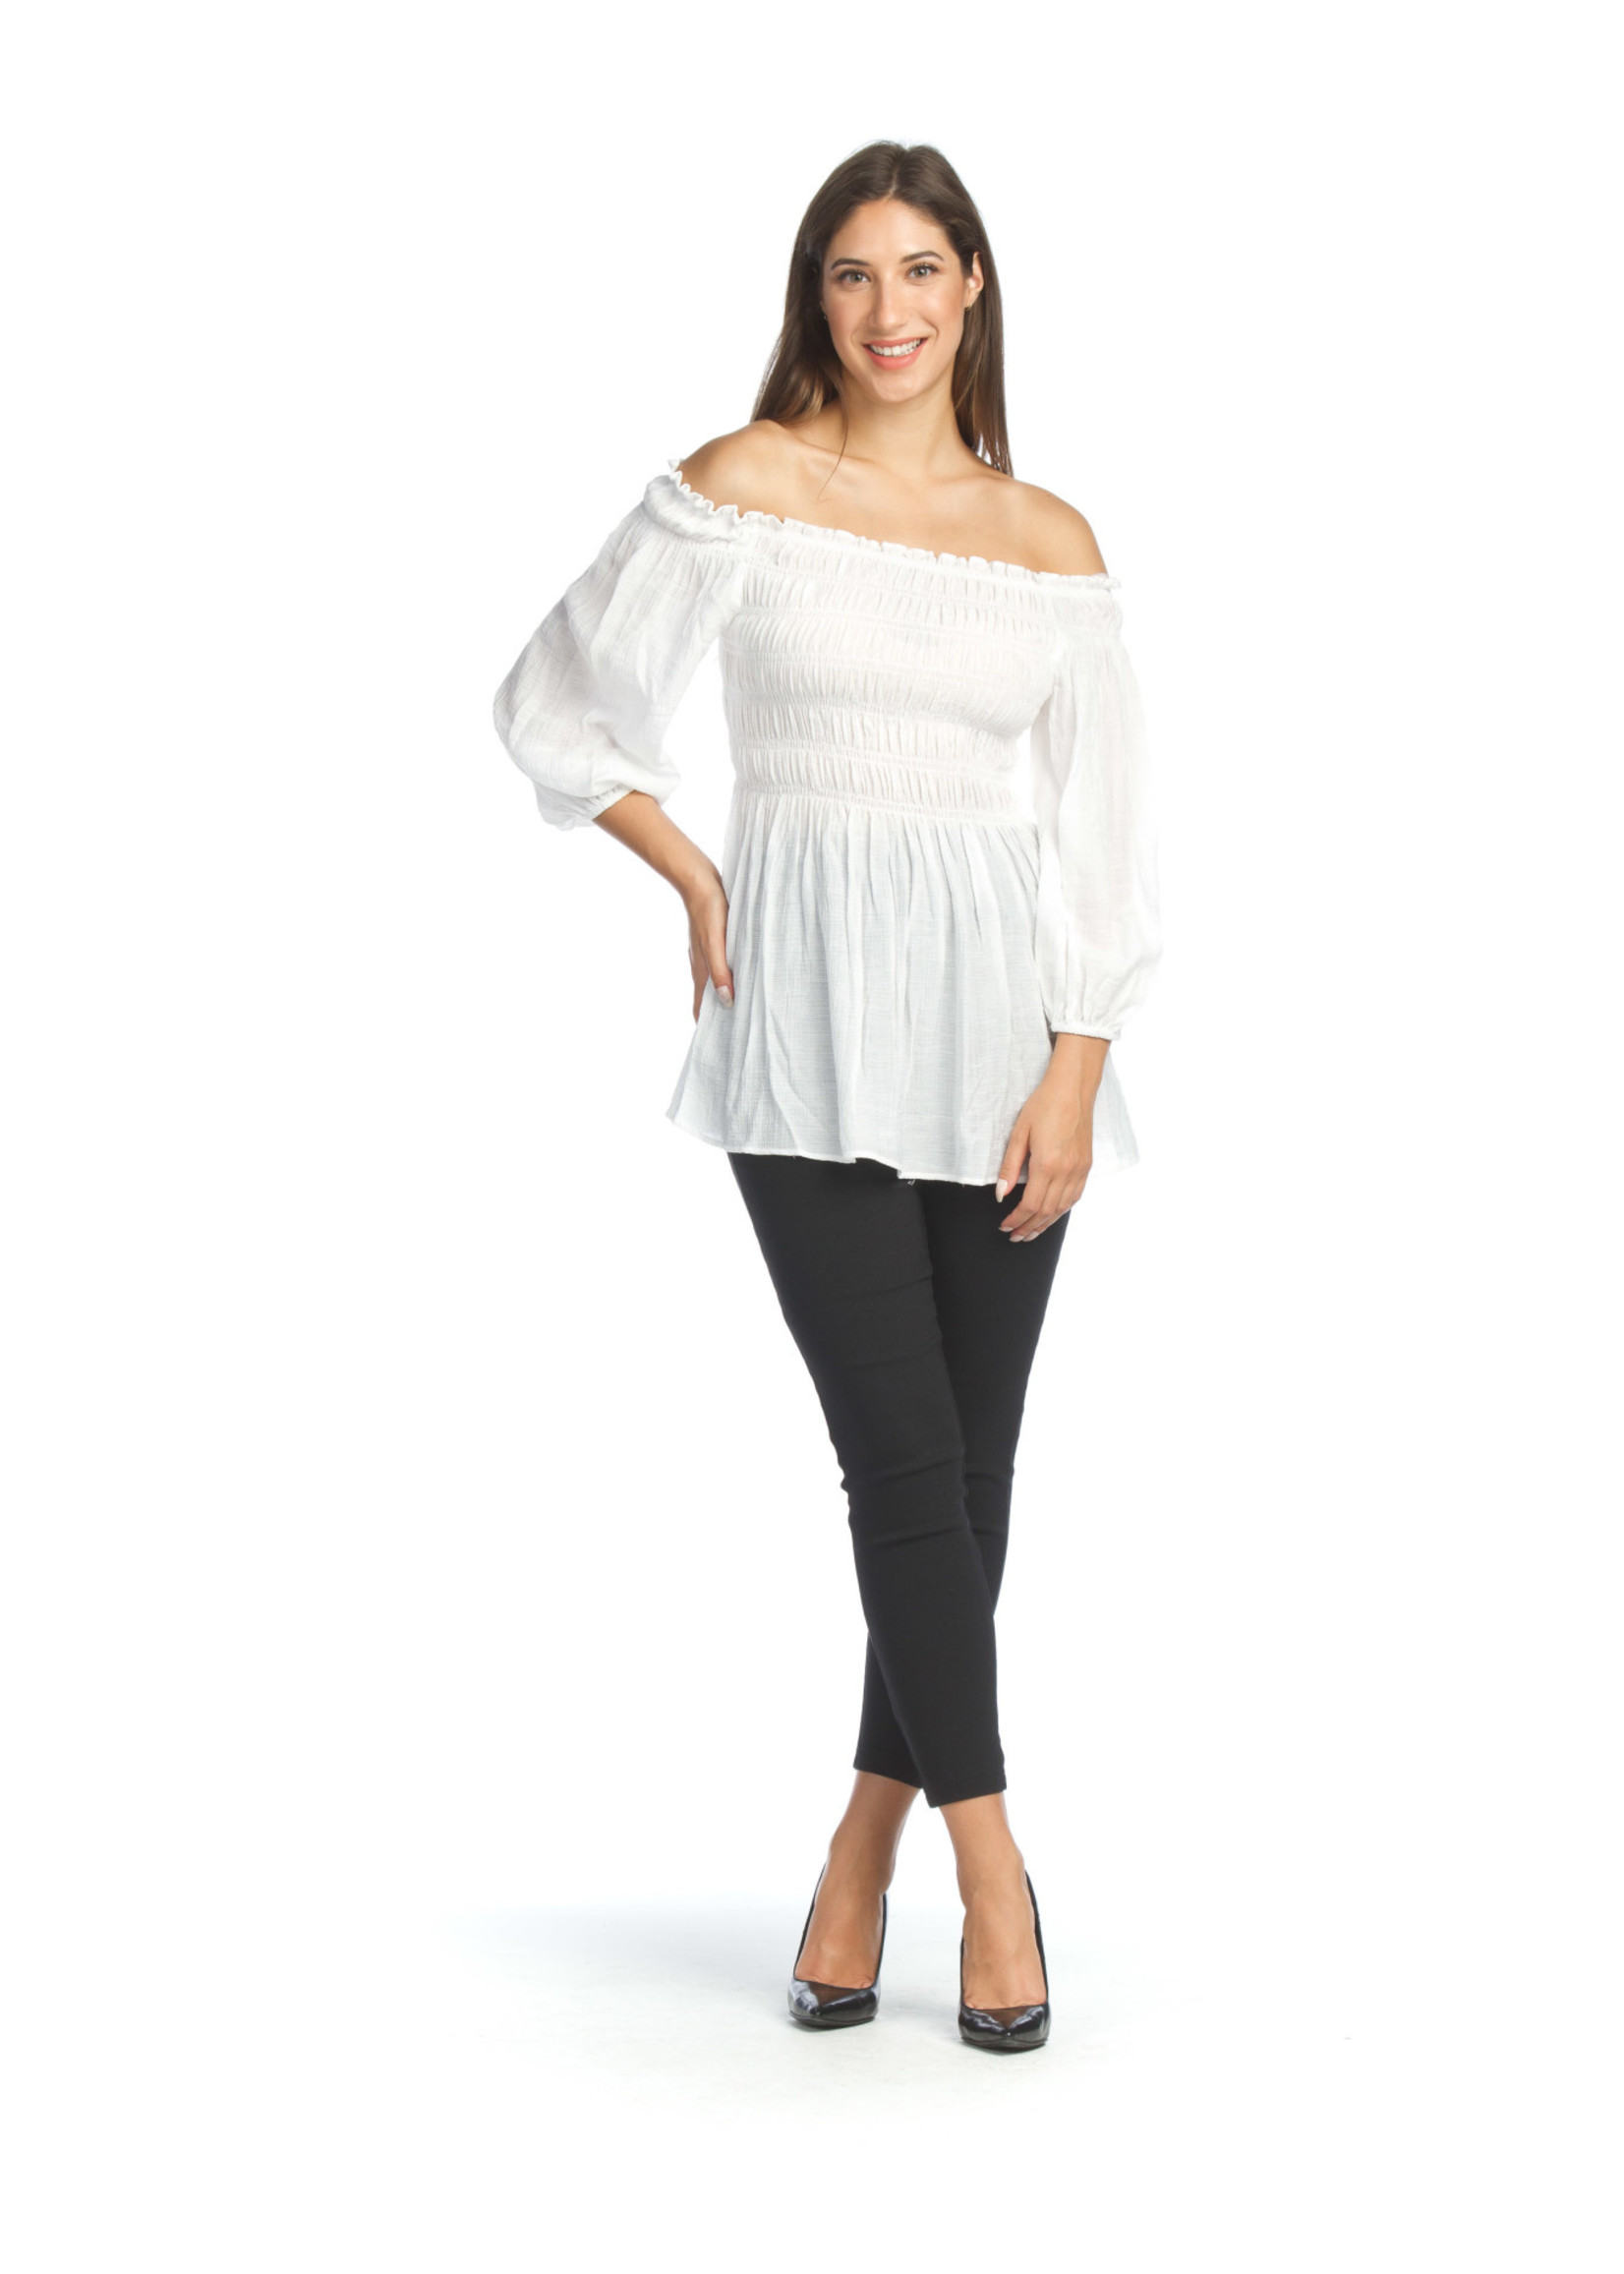 Papillon 3/4 puffy sleeve off the shoulder blouse